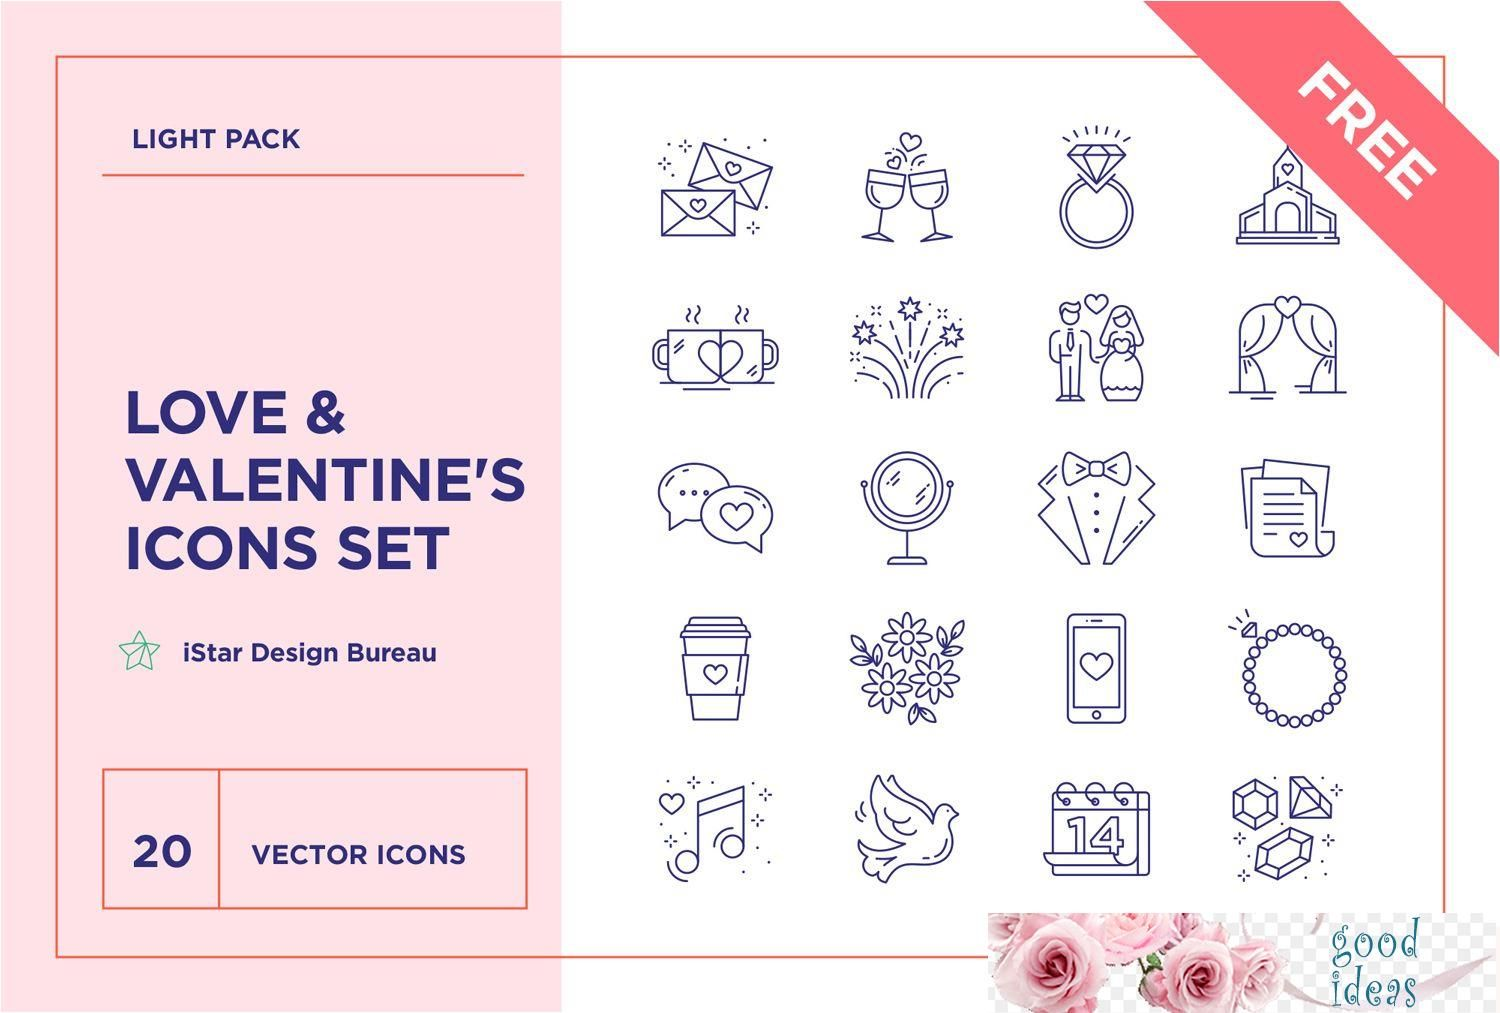 13.01.2018 Specially for Valentine's Day we share a